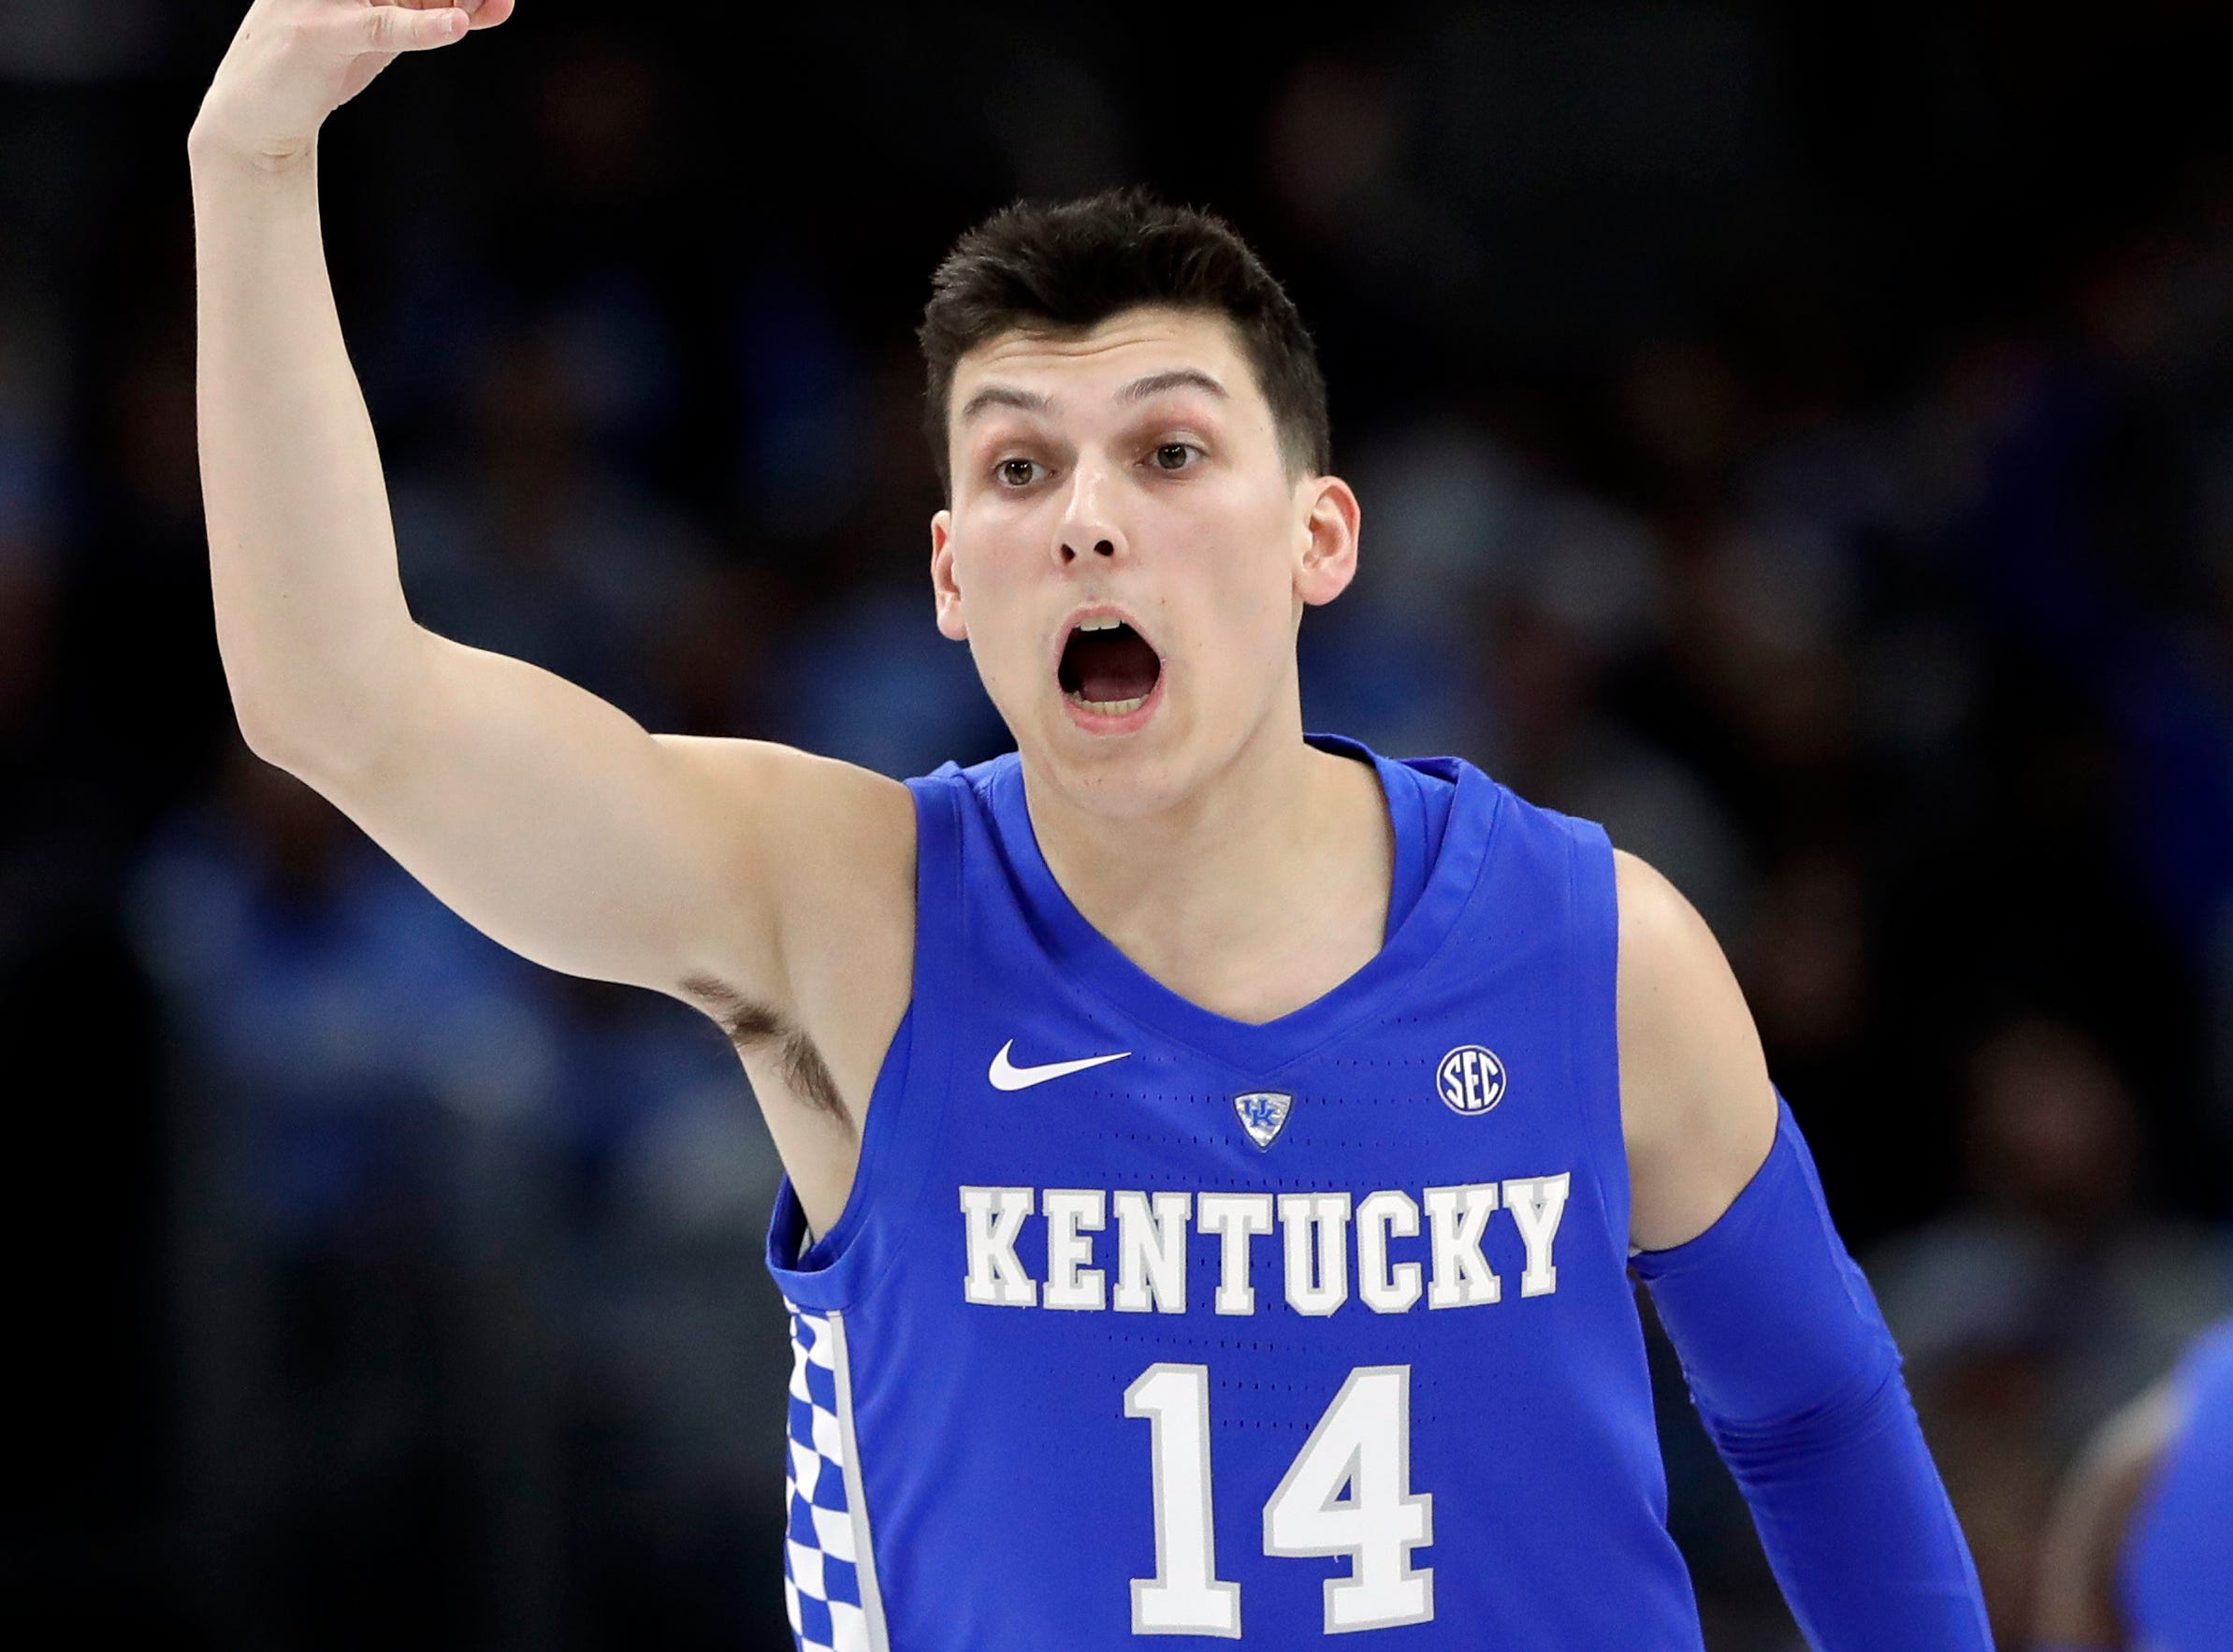 Kentucky guard/forward Tyler Herro reacts after he made a three-point basket against North Carolina during the first half of an NCAA college basketball game in the fifth annual CBS Sports Classic, Saturday, Dec. 22, 2018, in Chicago.